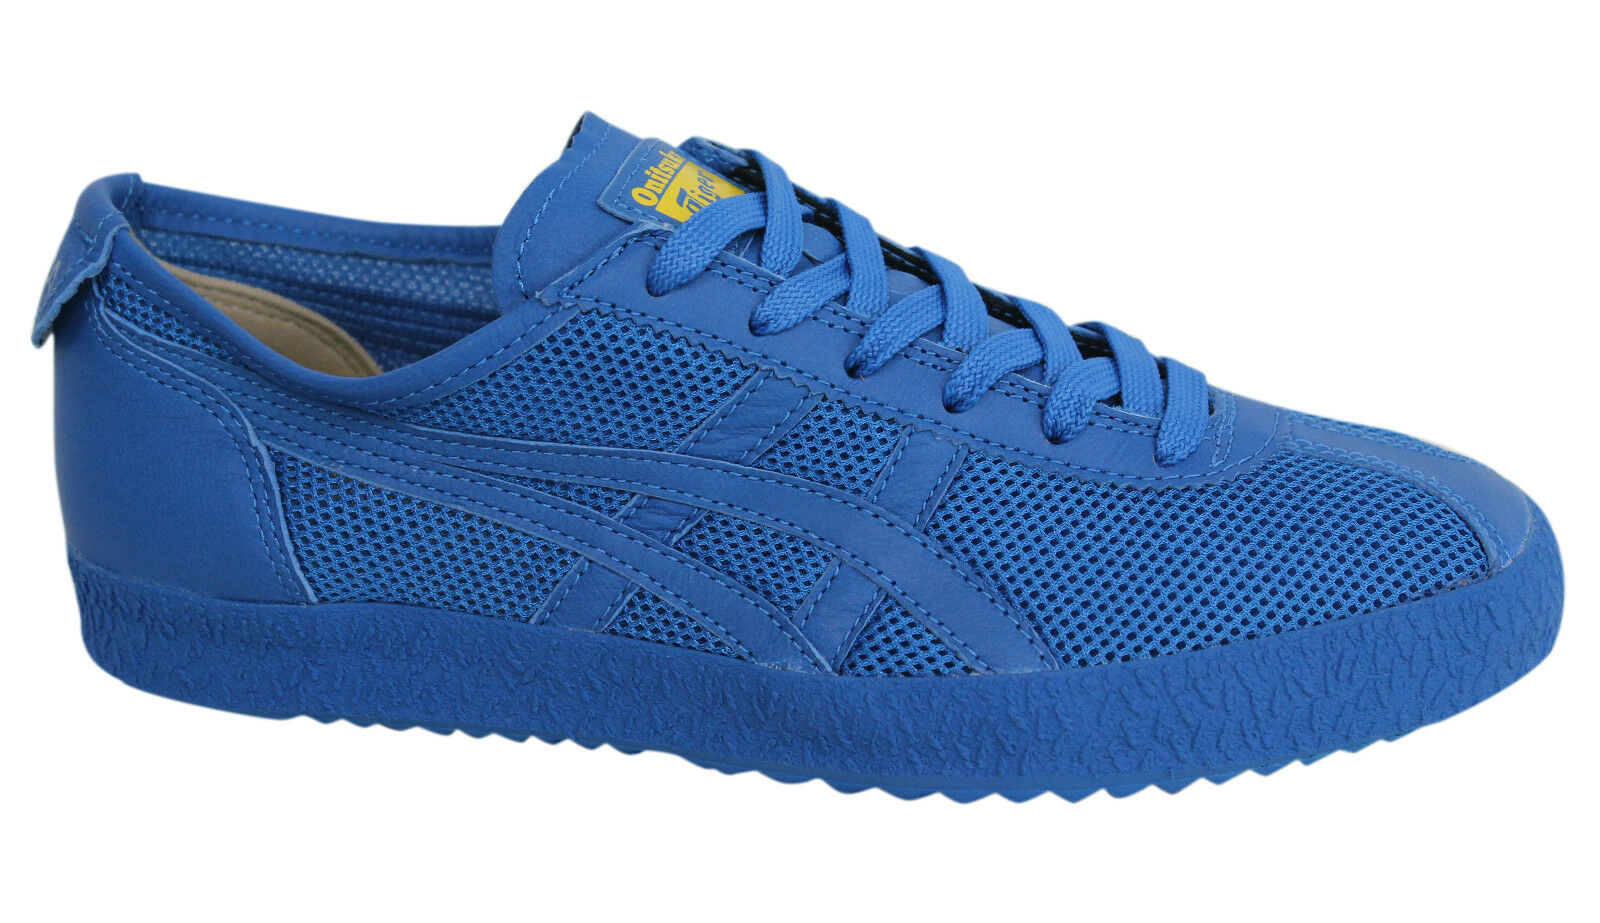 Asics Onitsuka Tiger Unisex Mexico Delegation Lace Up Unisex Tiger Trainers D6N1N 4242 D81 2f4315